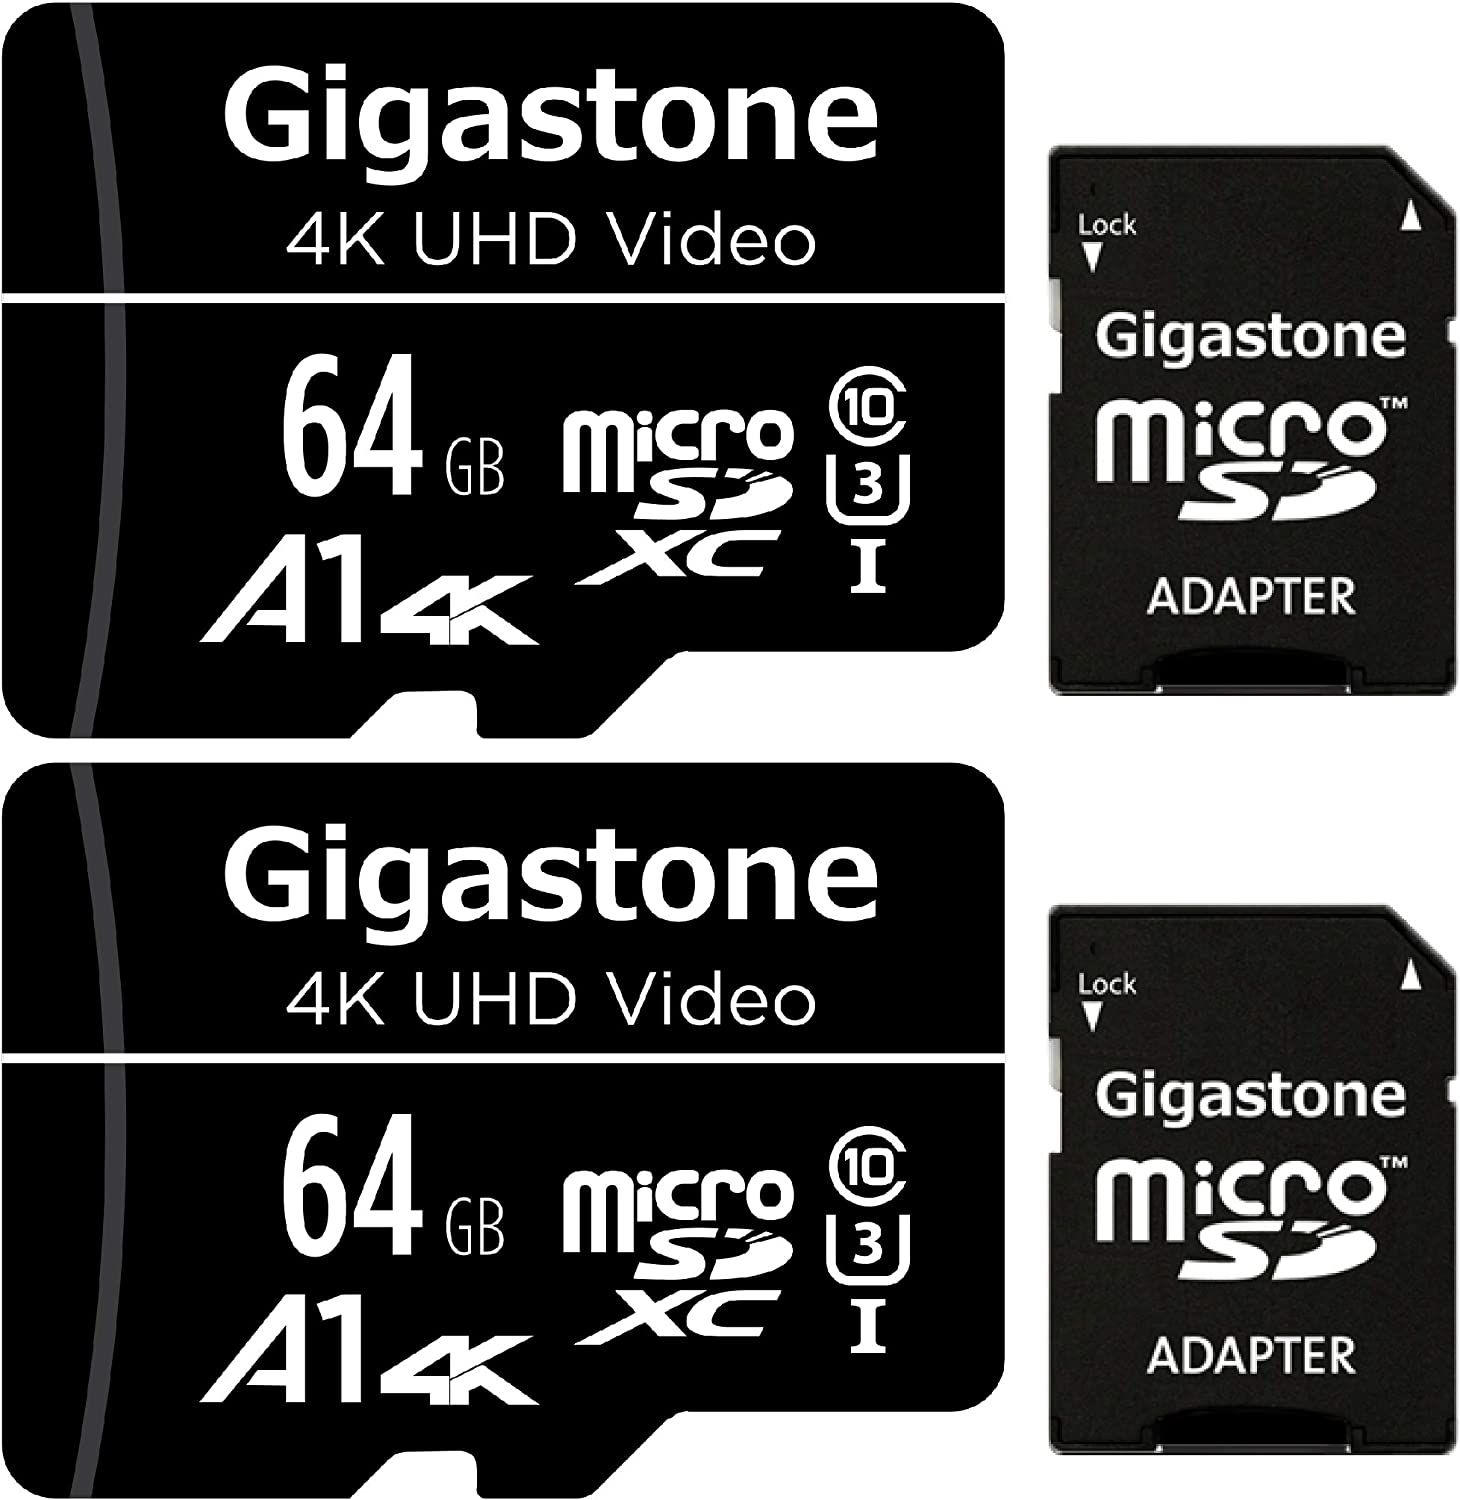 Gigastone 64GB 2-Pack Micro SD Card, 4K UHD Video, Surveillance Security Cam Action Camera Drone Professional, 90MB/s Micro SDXC UHS-I U3 Class 10